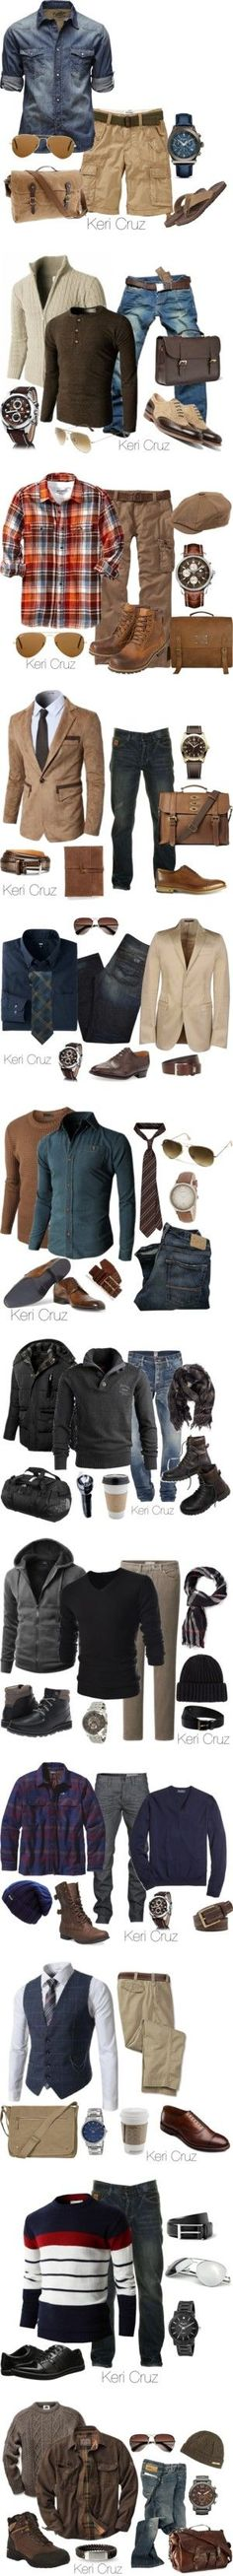 Men's Fashion Sets by Keri Cruz by keri-cruz on Polyvore featuring moda, Old Navy, Jack & Jones, Salvatore Ferragamo, Ray-Ban, J.Crew, Kenneth Cole Reaction, Doublju, Cerruti 1881 and Mulberry